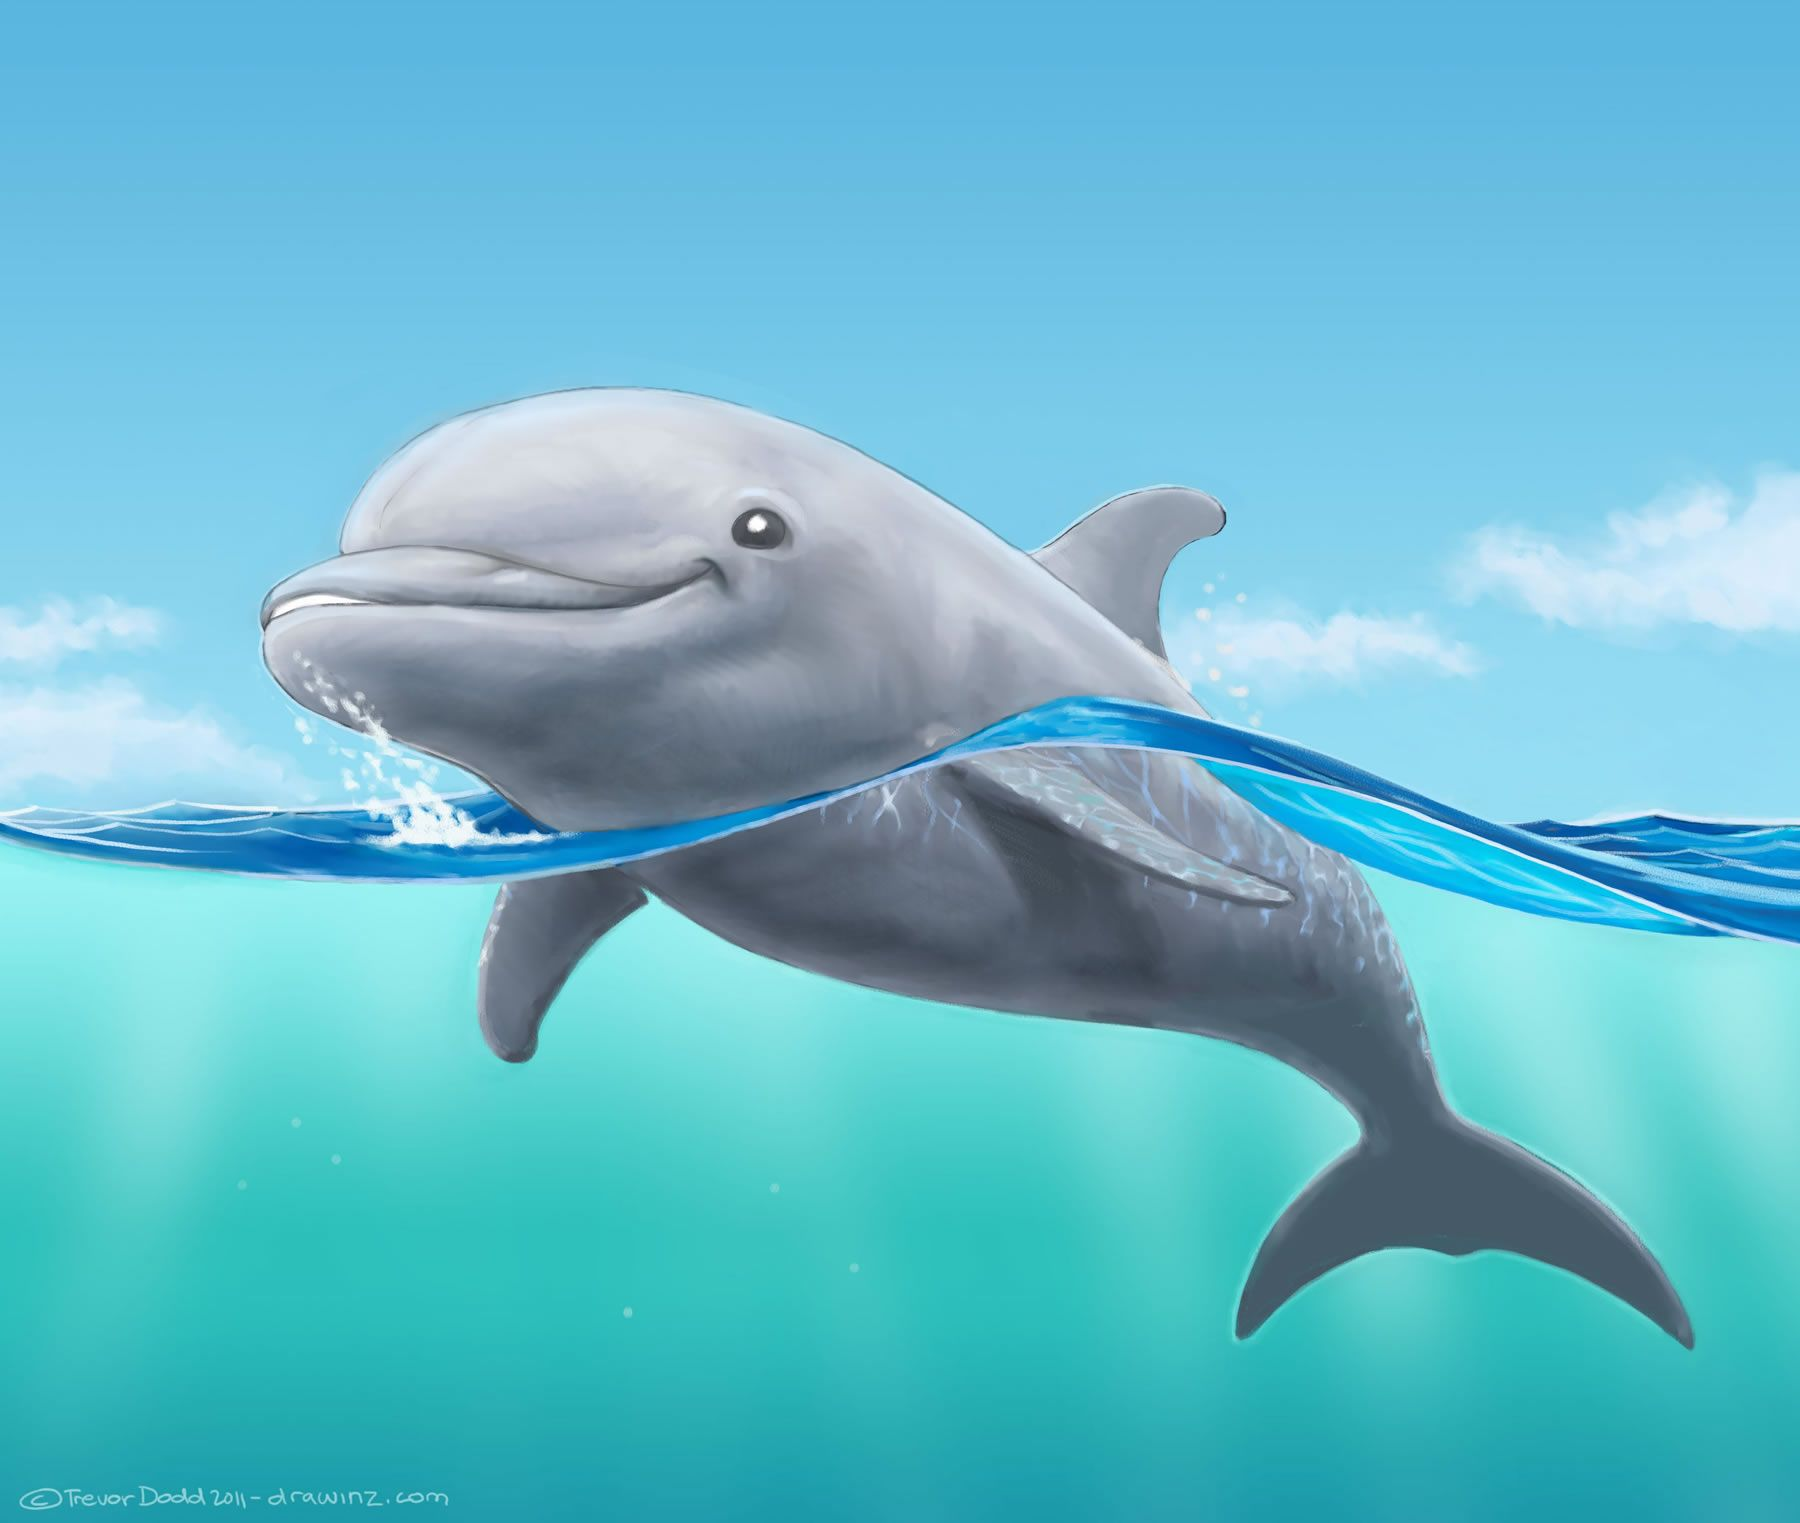 New drawing of a dolphin Drawinz Aquatic Ideas